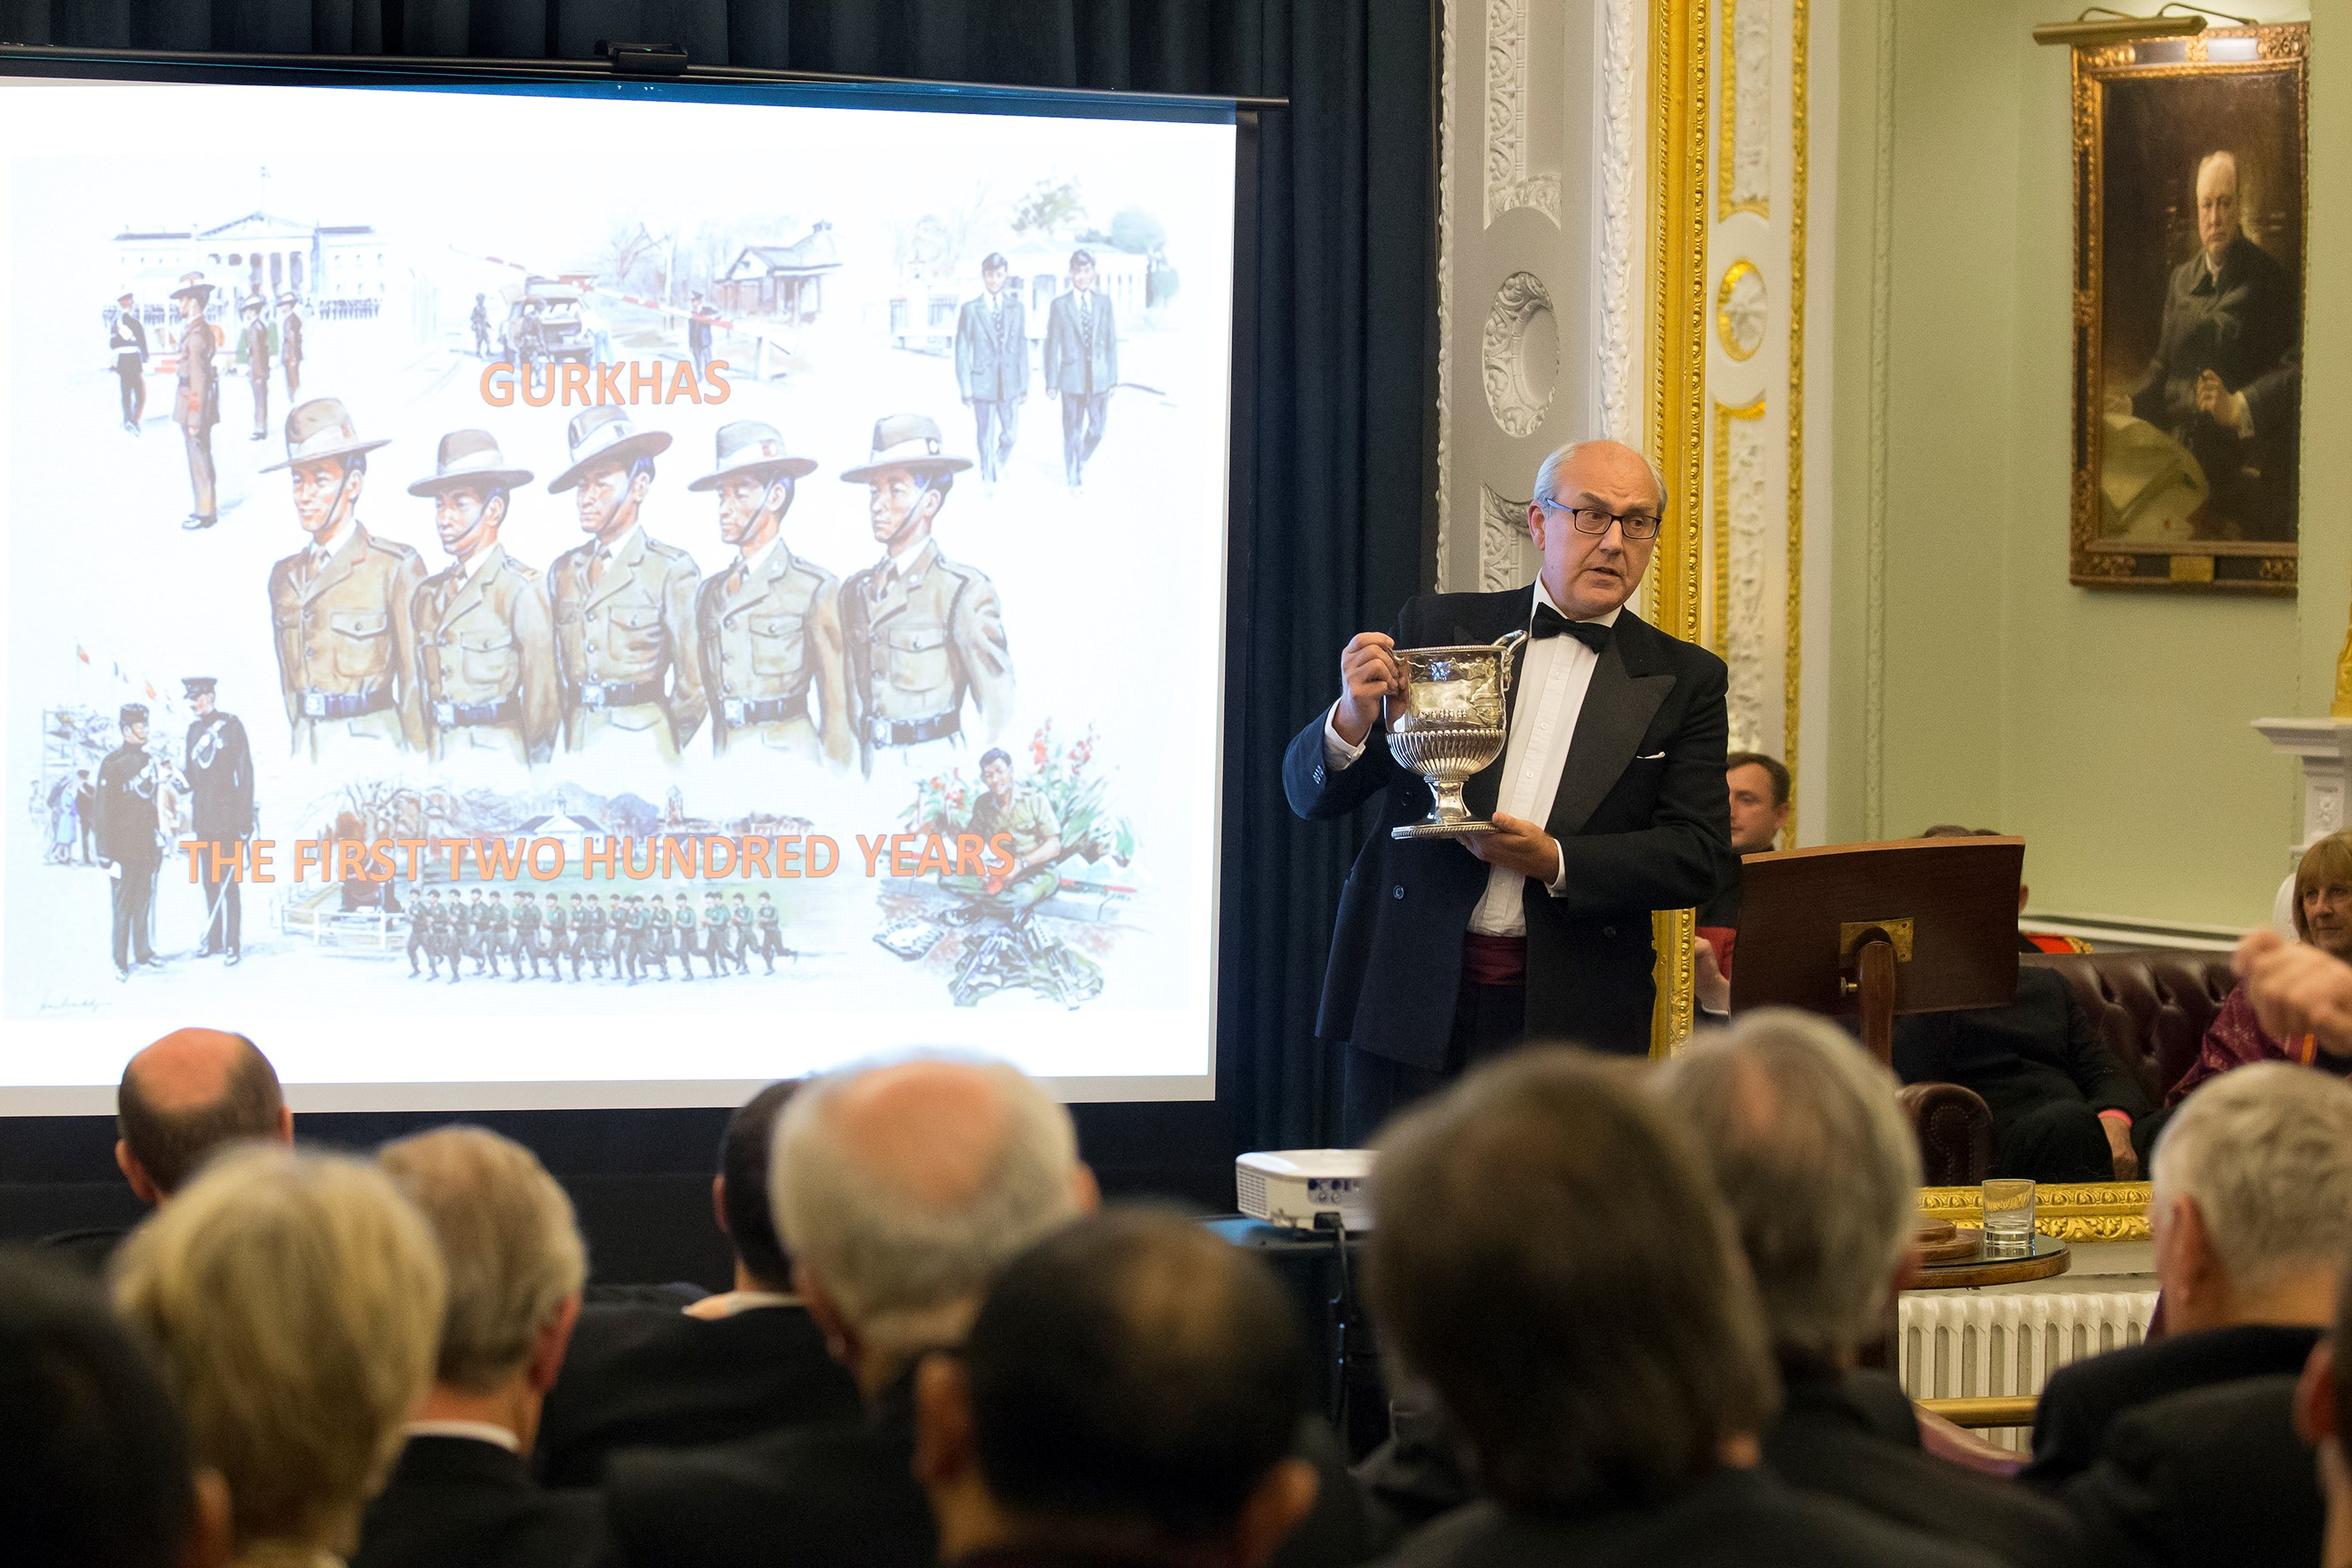 Director of the Gurkha Museum, Gavin Edgerly-Harris, showing the Makwanpur wine cooler, an item which connects the forbears, and by proxy the serving Brigade of Gurkhas, with the East India Company.